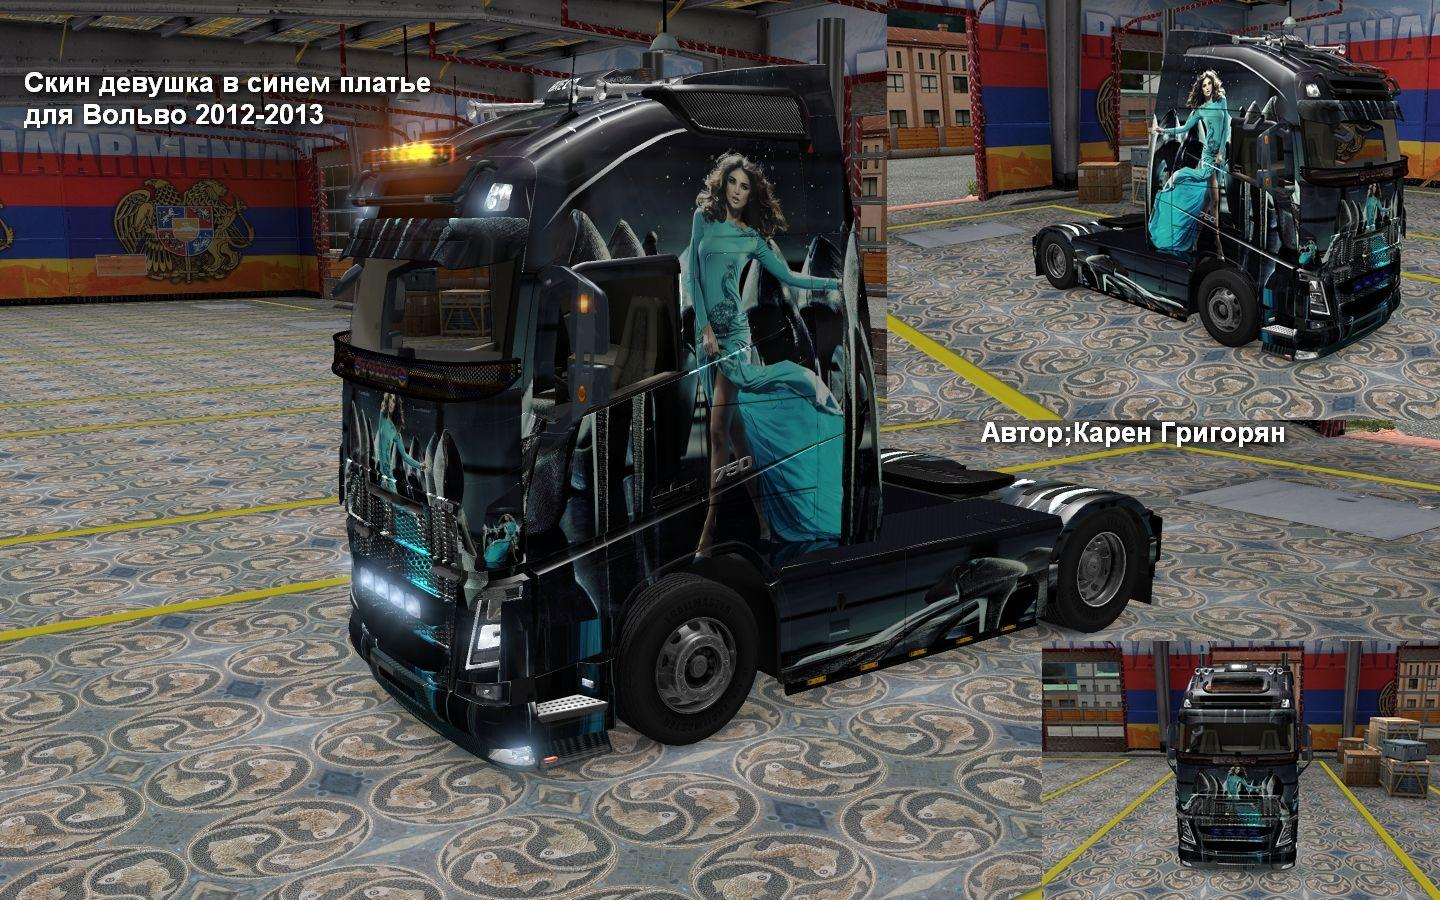 Iveco strator and volvo fh 2013 tuning euro truck simulator 2 mods - Blue Girl Skin 1 22 Ets 2 Mods Euro Truck Simulator 2